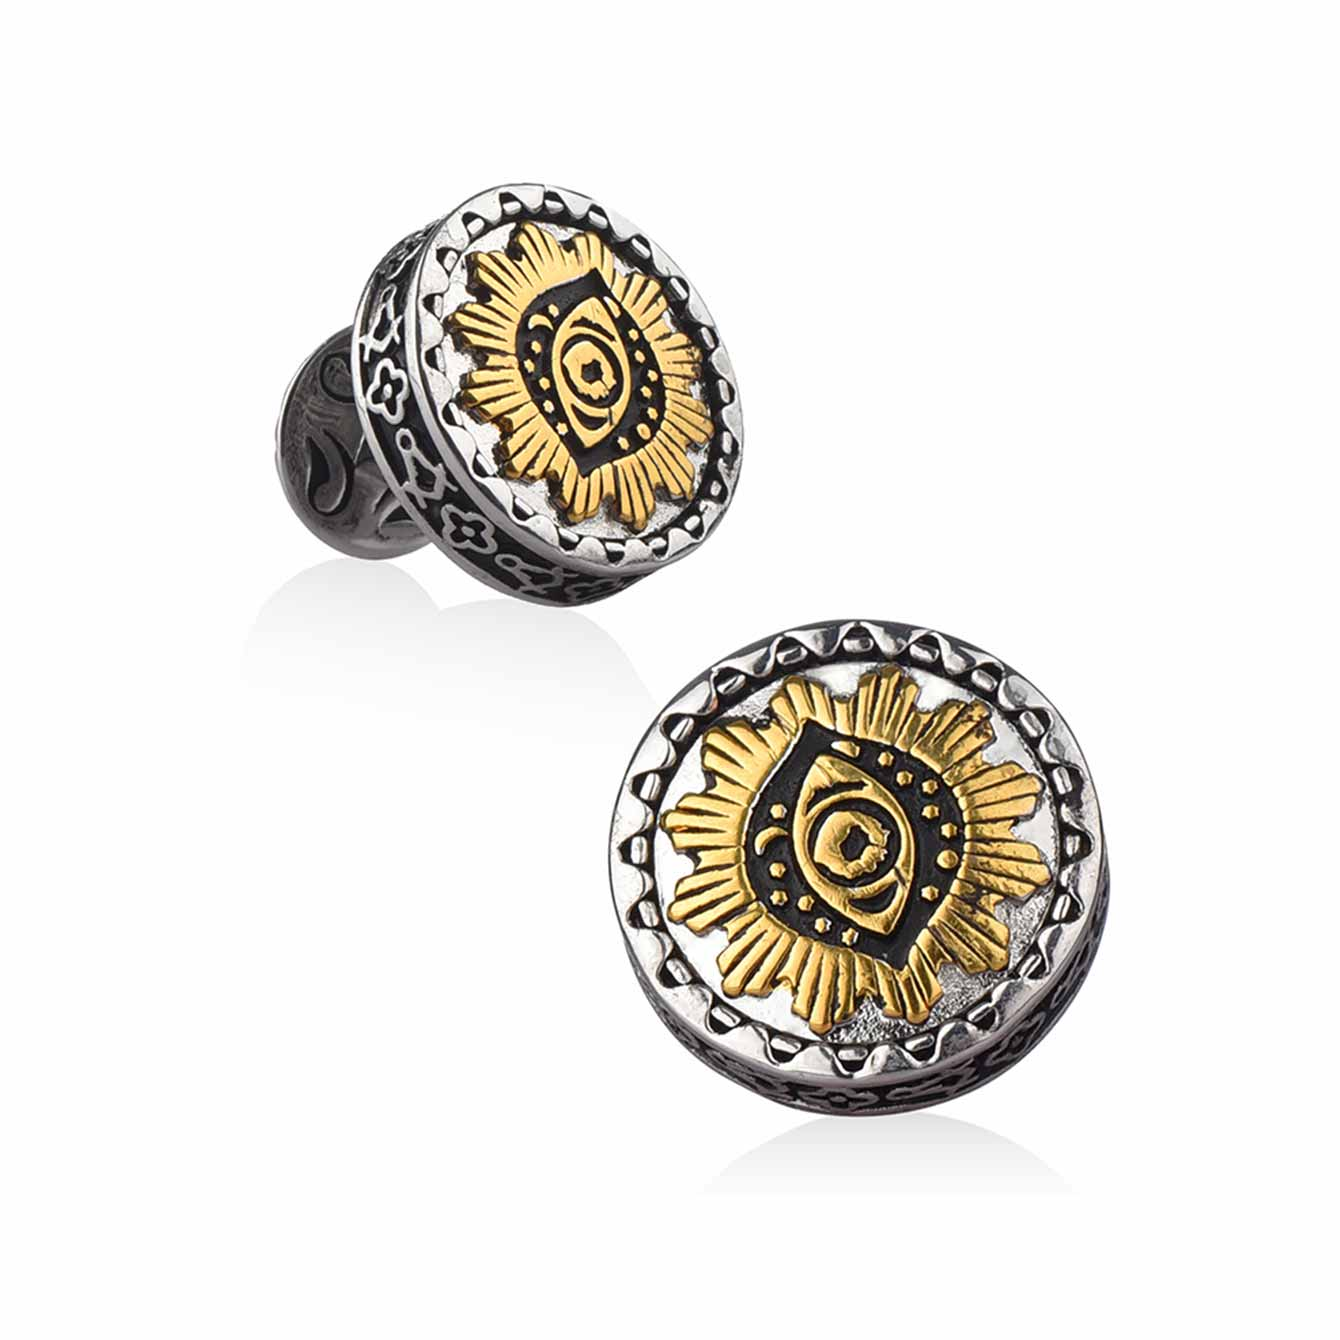 The Applegate Cufflinks